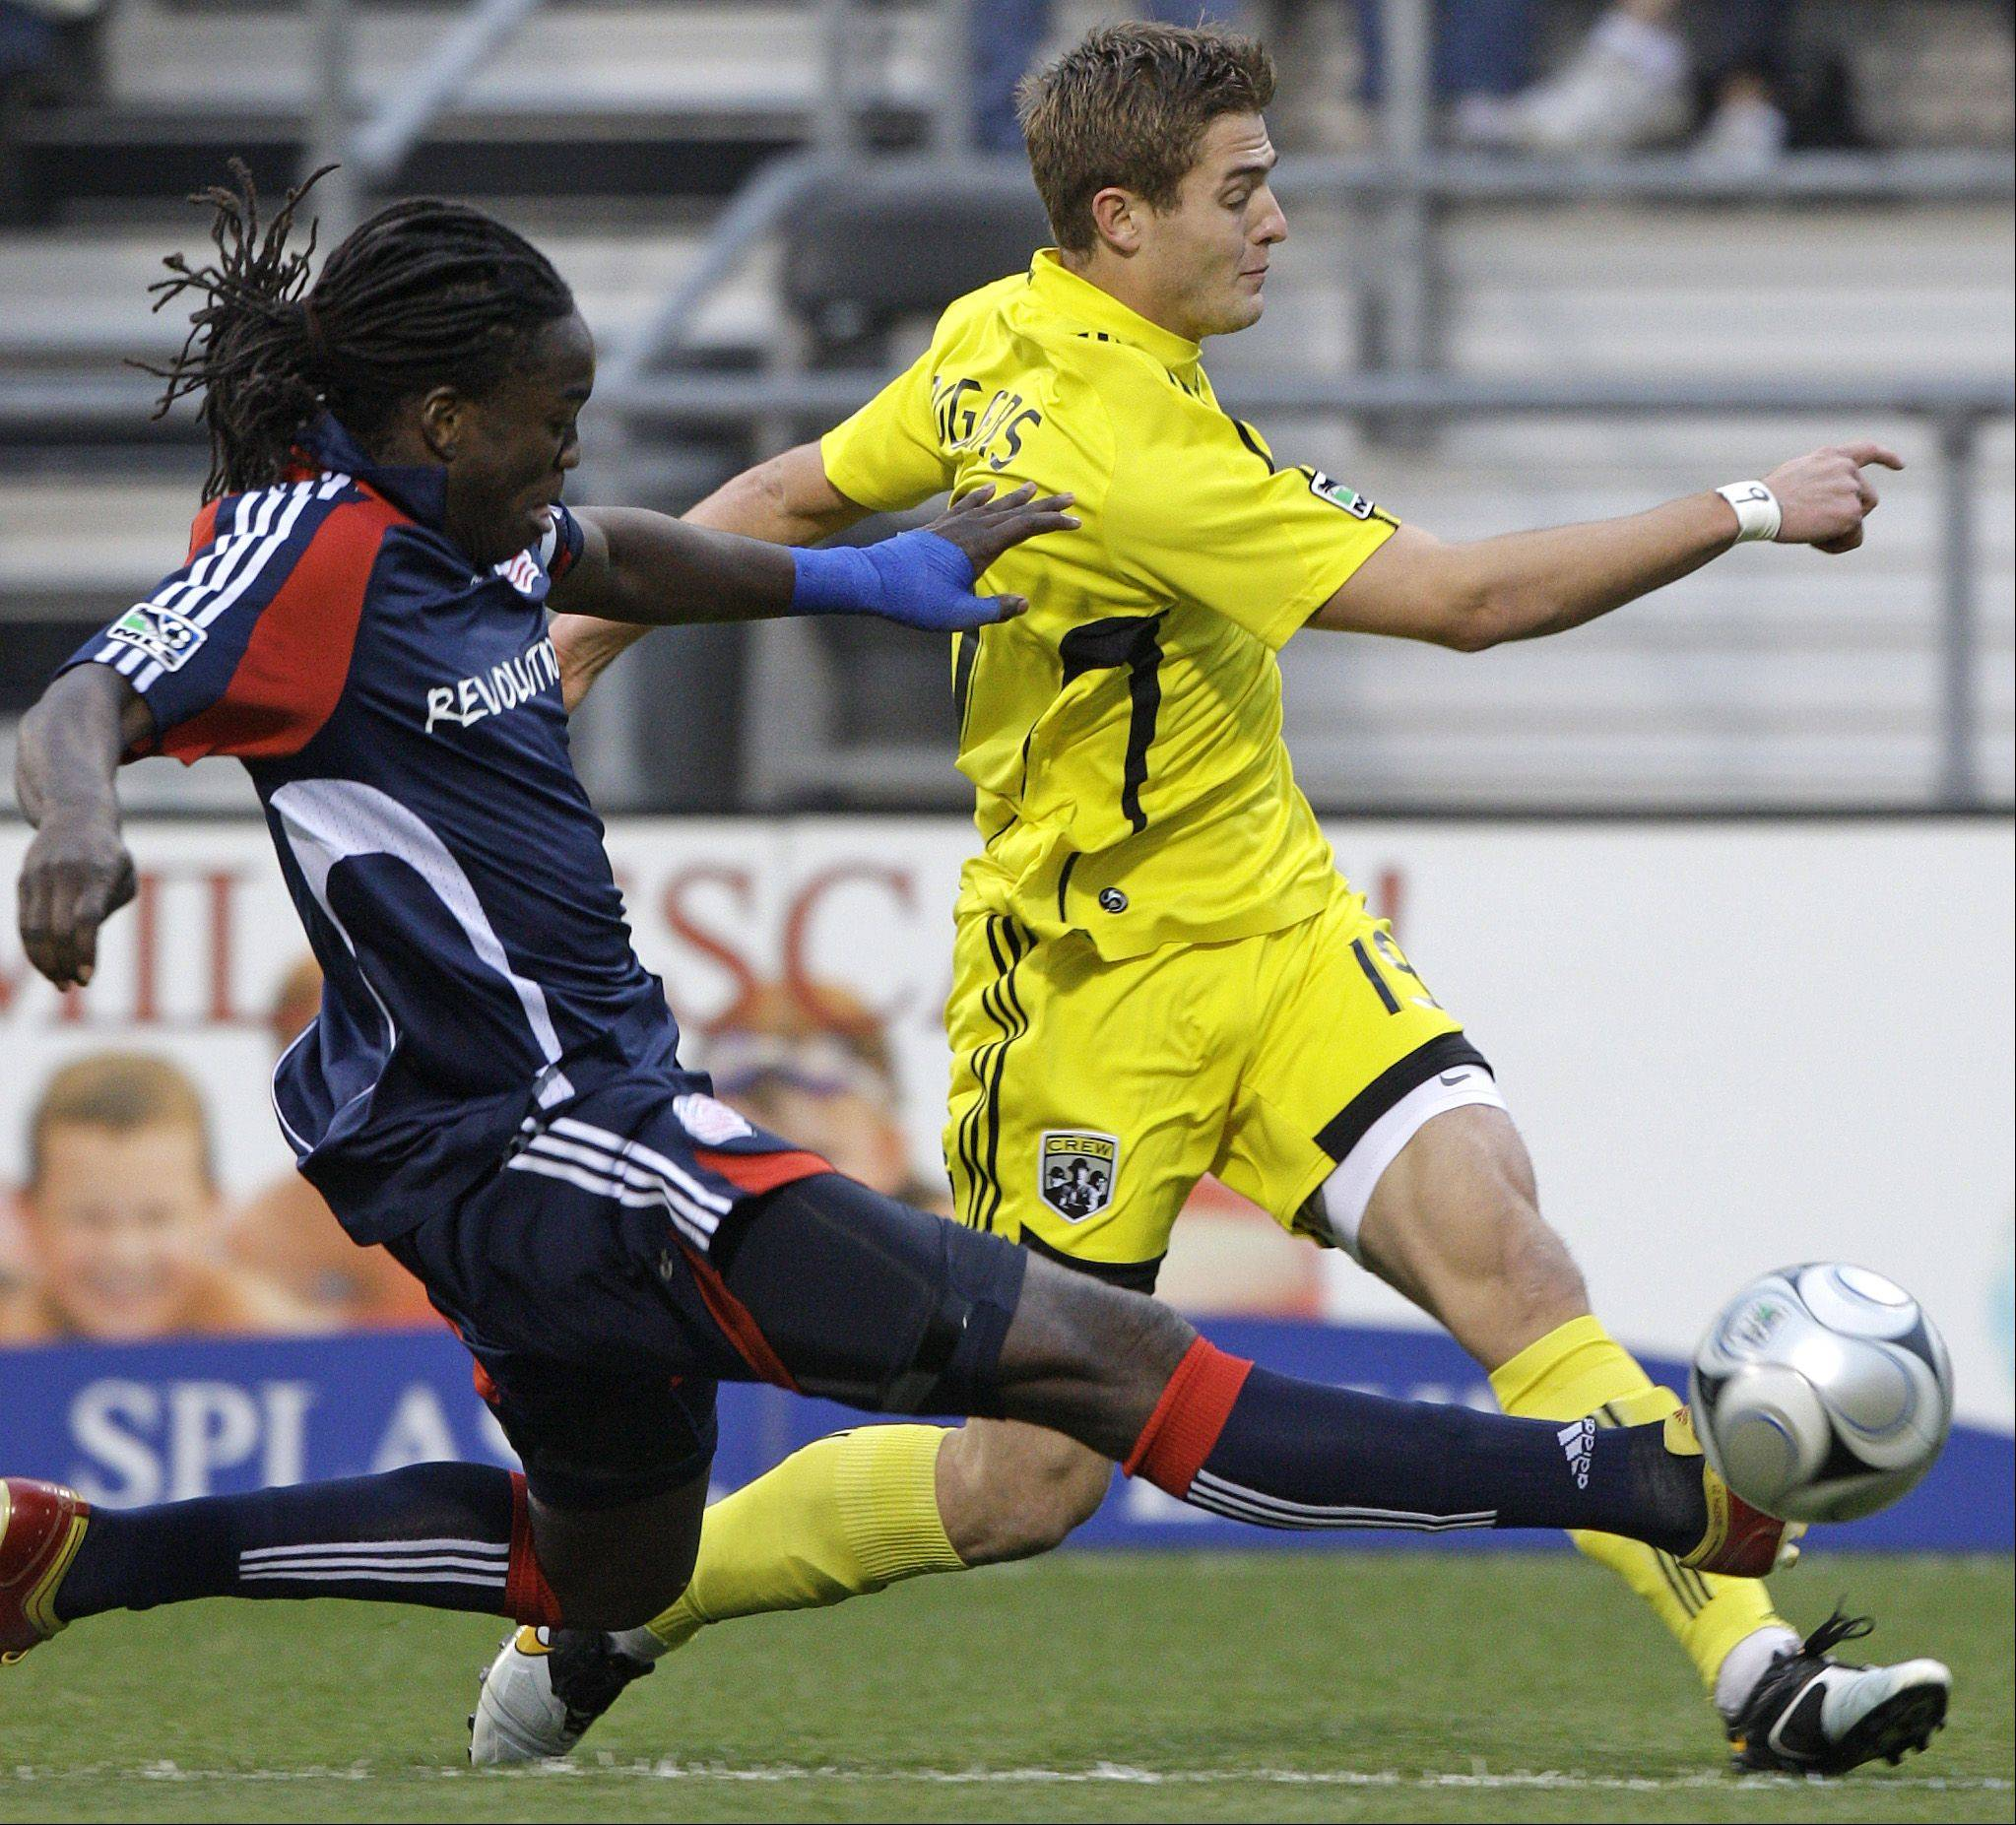 American soccer player Robbie Rogers, right, whose MLS rights are held by the Chicago Fire, announced Friday that he is gay and is stepping away from the sport.